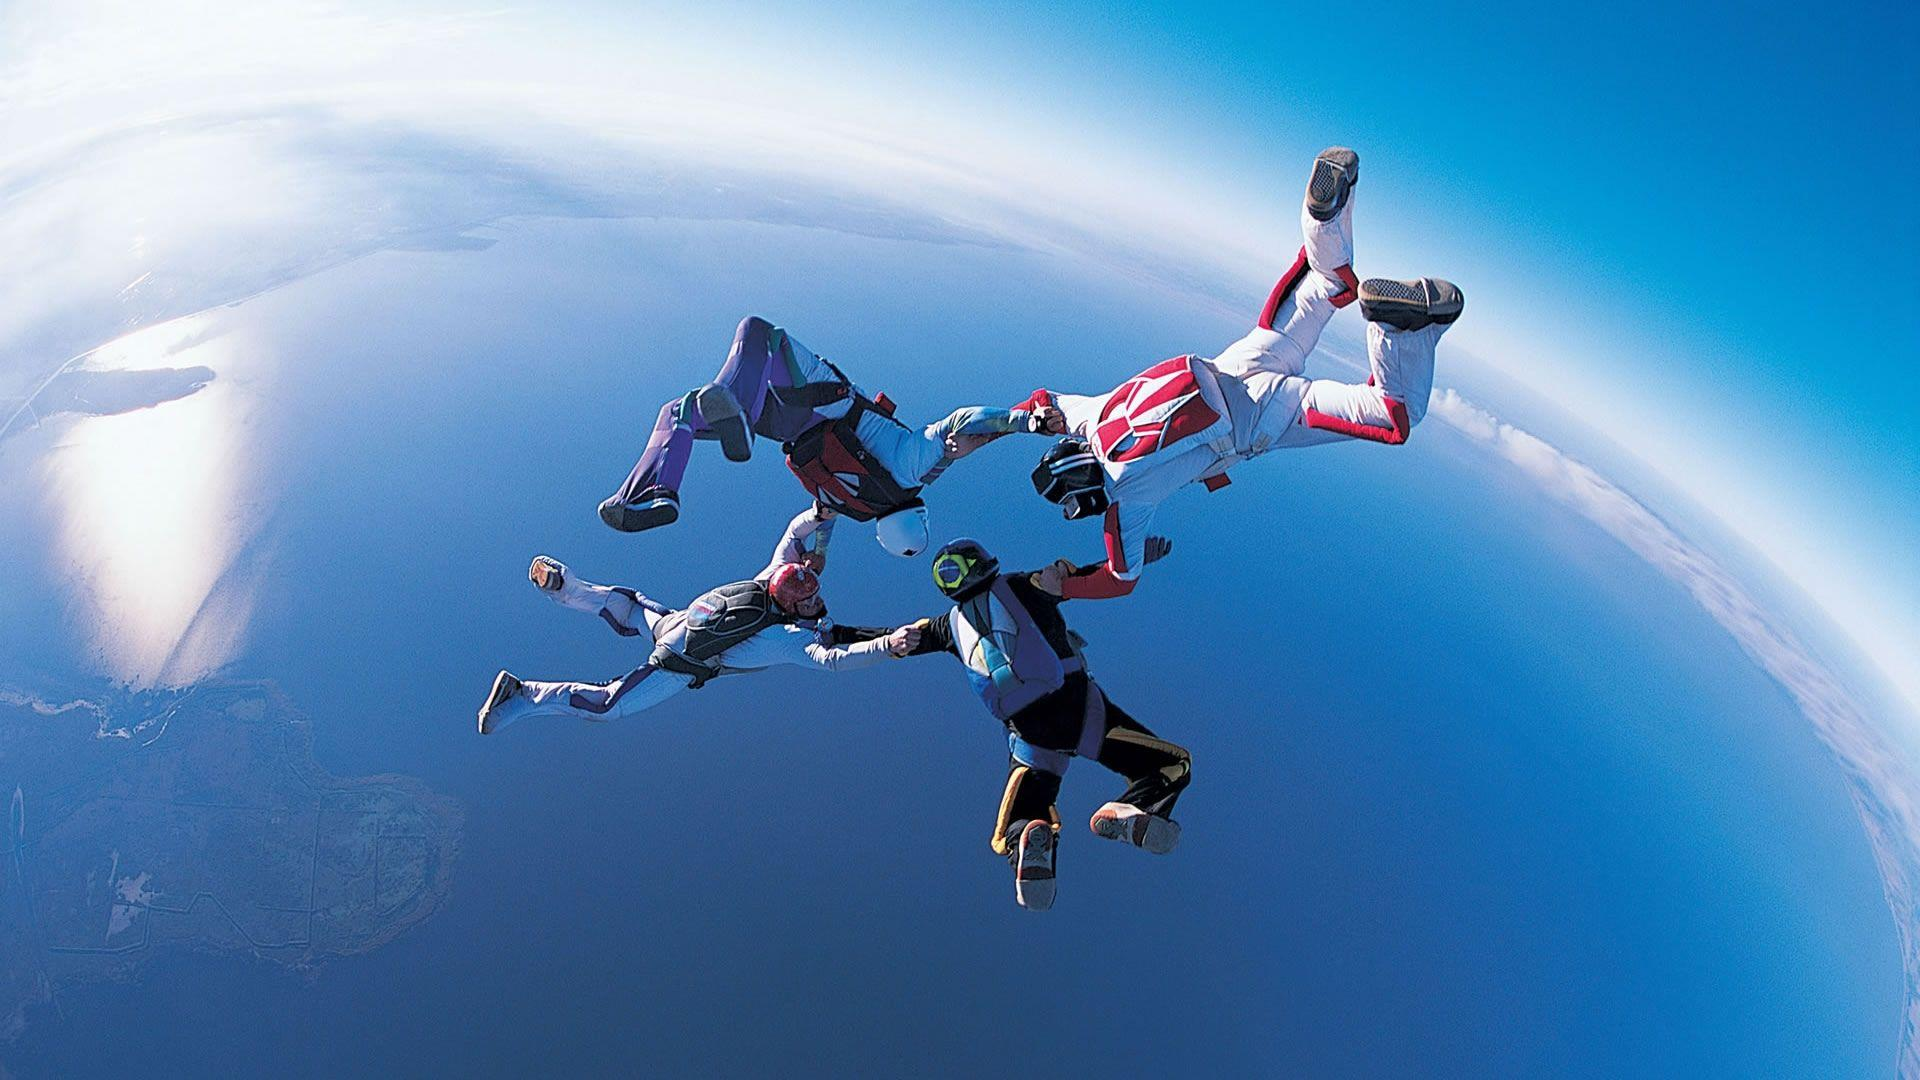 Jumping, Paratrooper, Atmosphere, Extreme Sport, Parachute HD